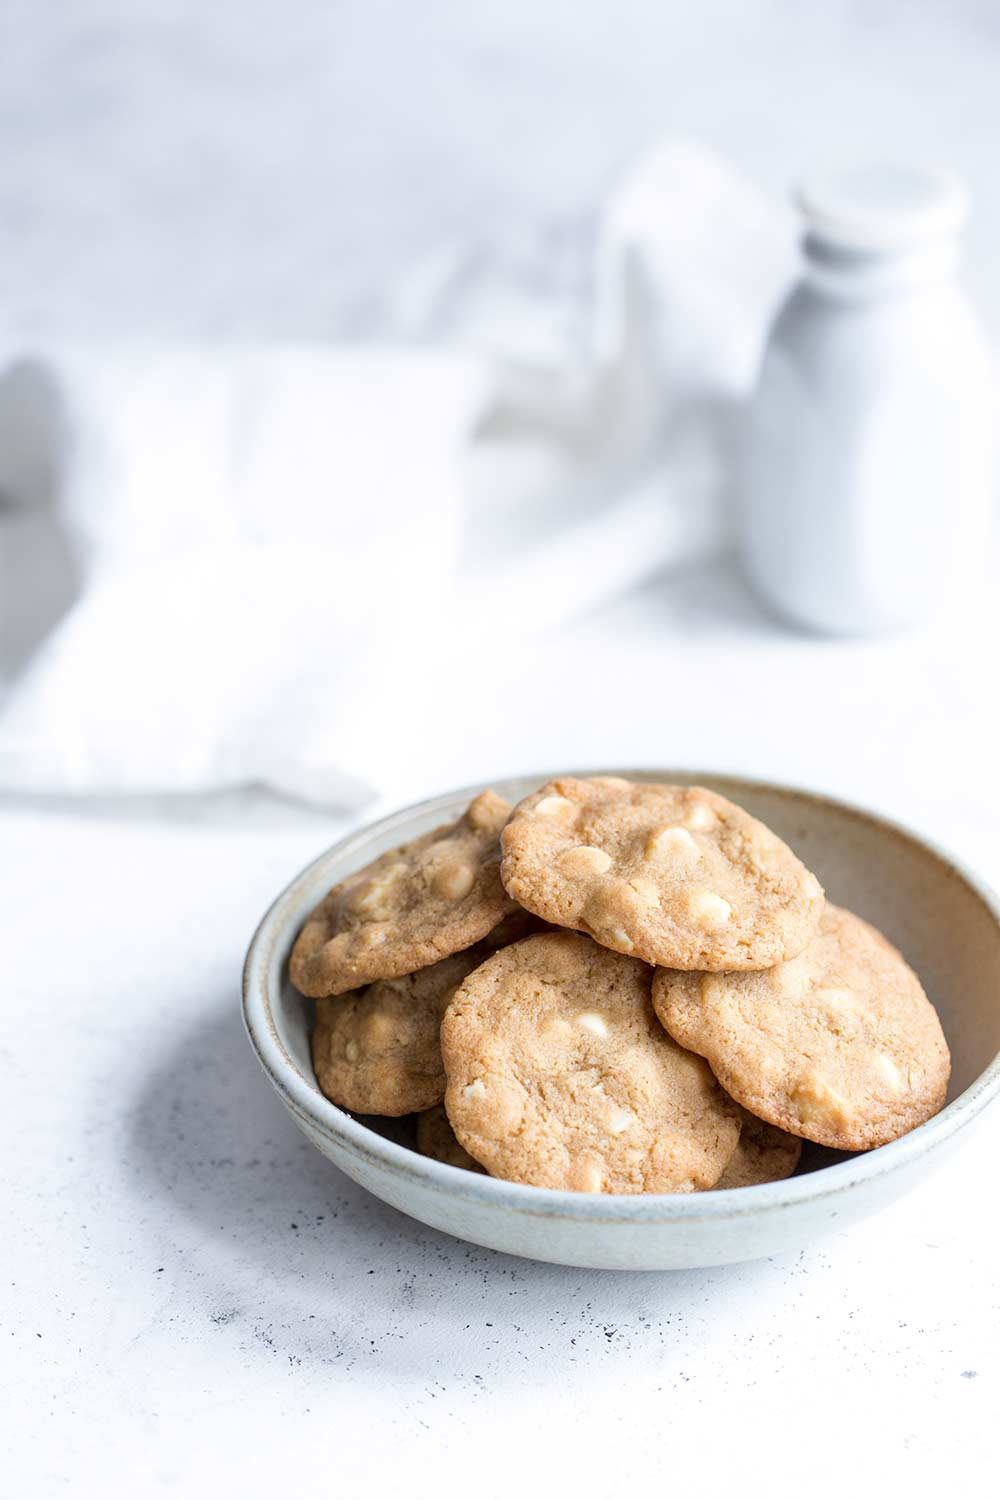 White chocolate macadamia nut cookies in a bowl